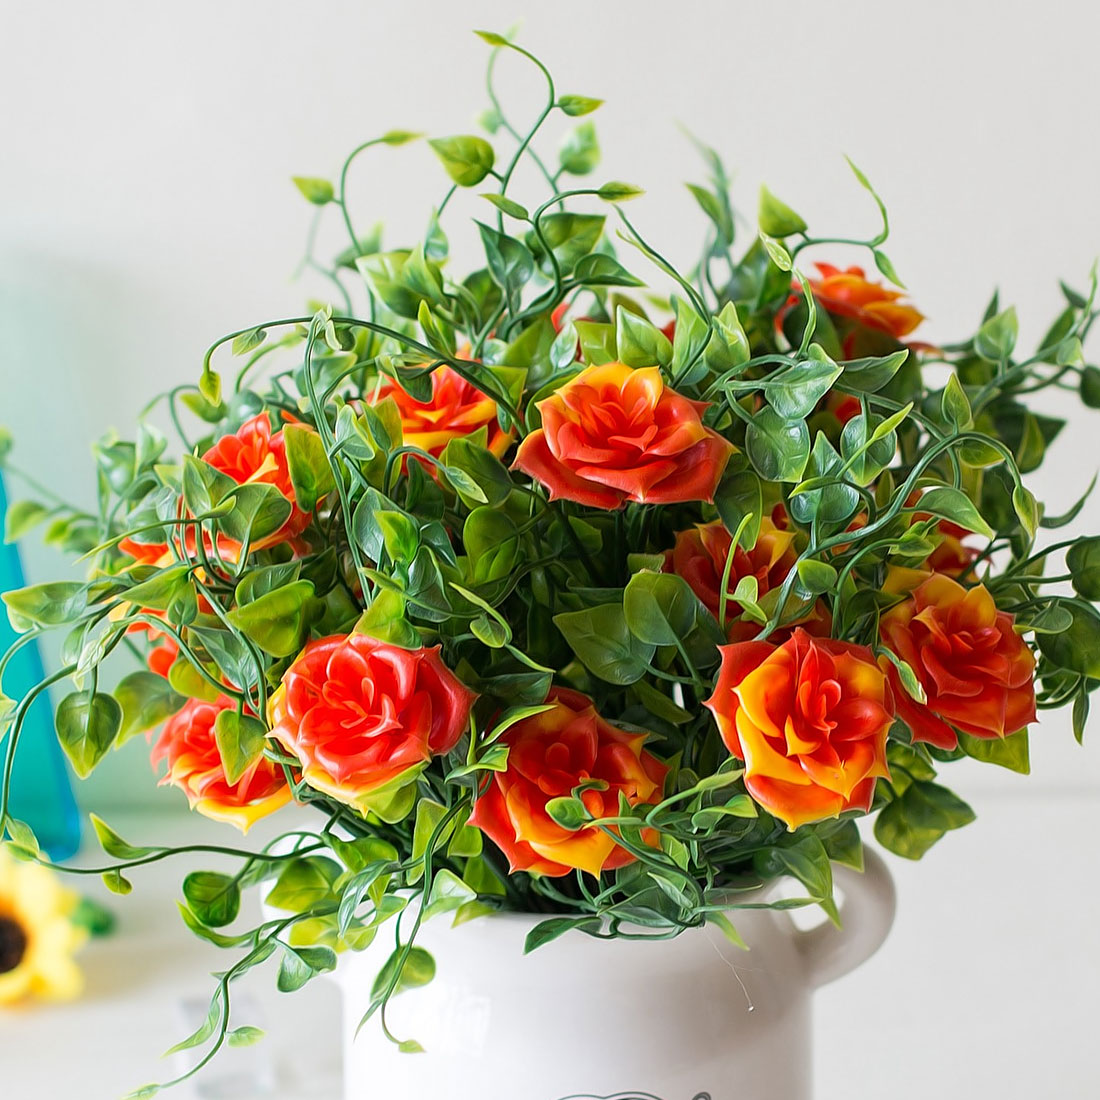 Silk flores 1 branch small artificial plants grass fake rose floral rose flowers home decoration 1 branch small artificial flowers plants grass fake floral plastic silk eucalyptus izmirmasajfo